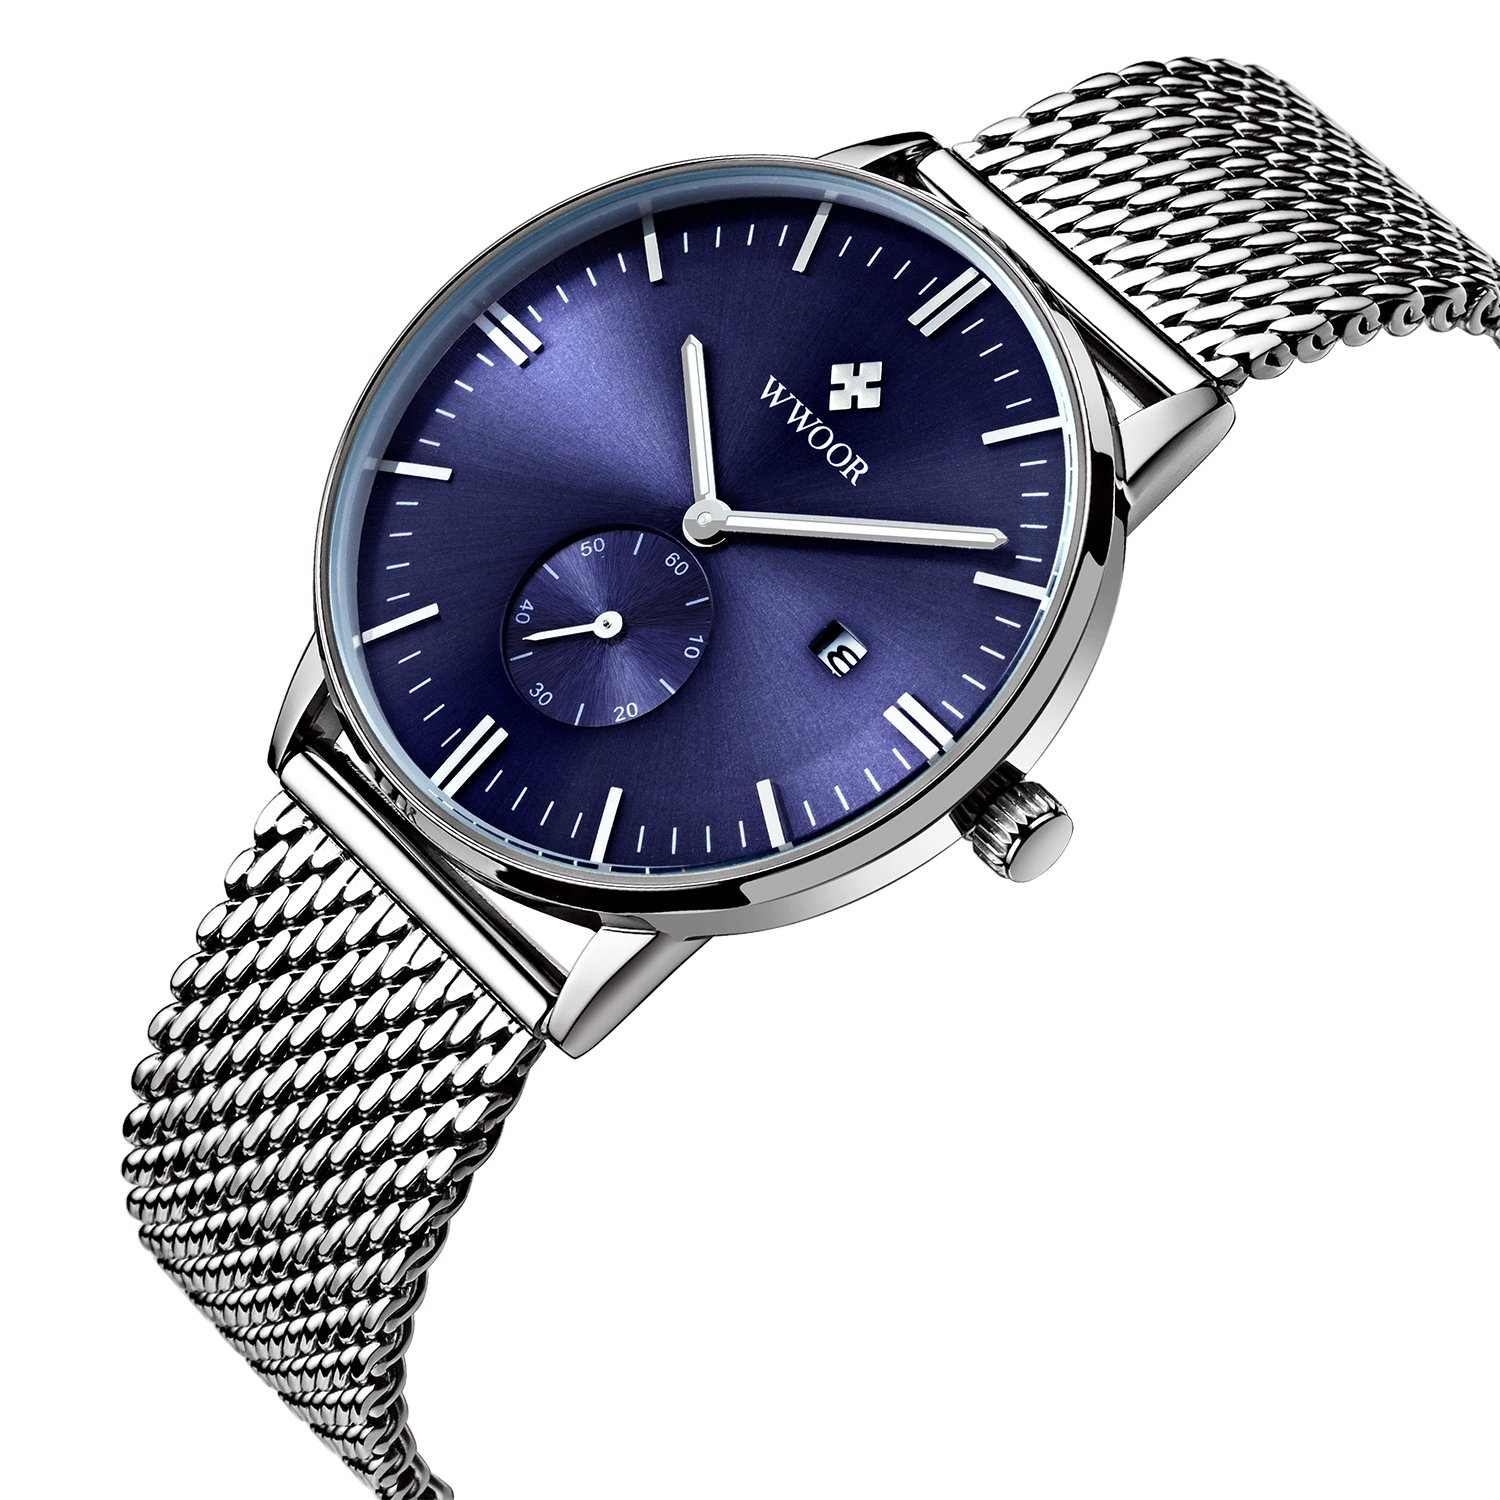 Amazon.com: Mens Luxury Stainless Steel Mesh Band Watch With Date Male Casual Dress Sport Wrist Watches Blue: Watches